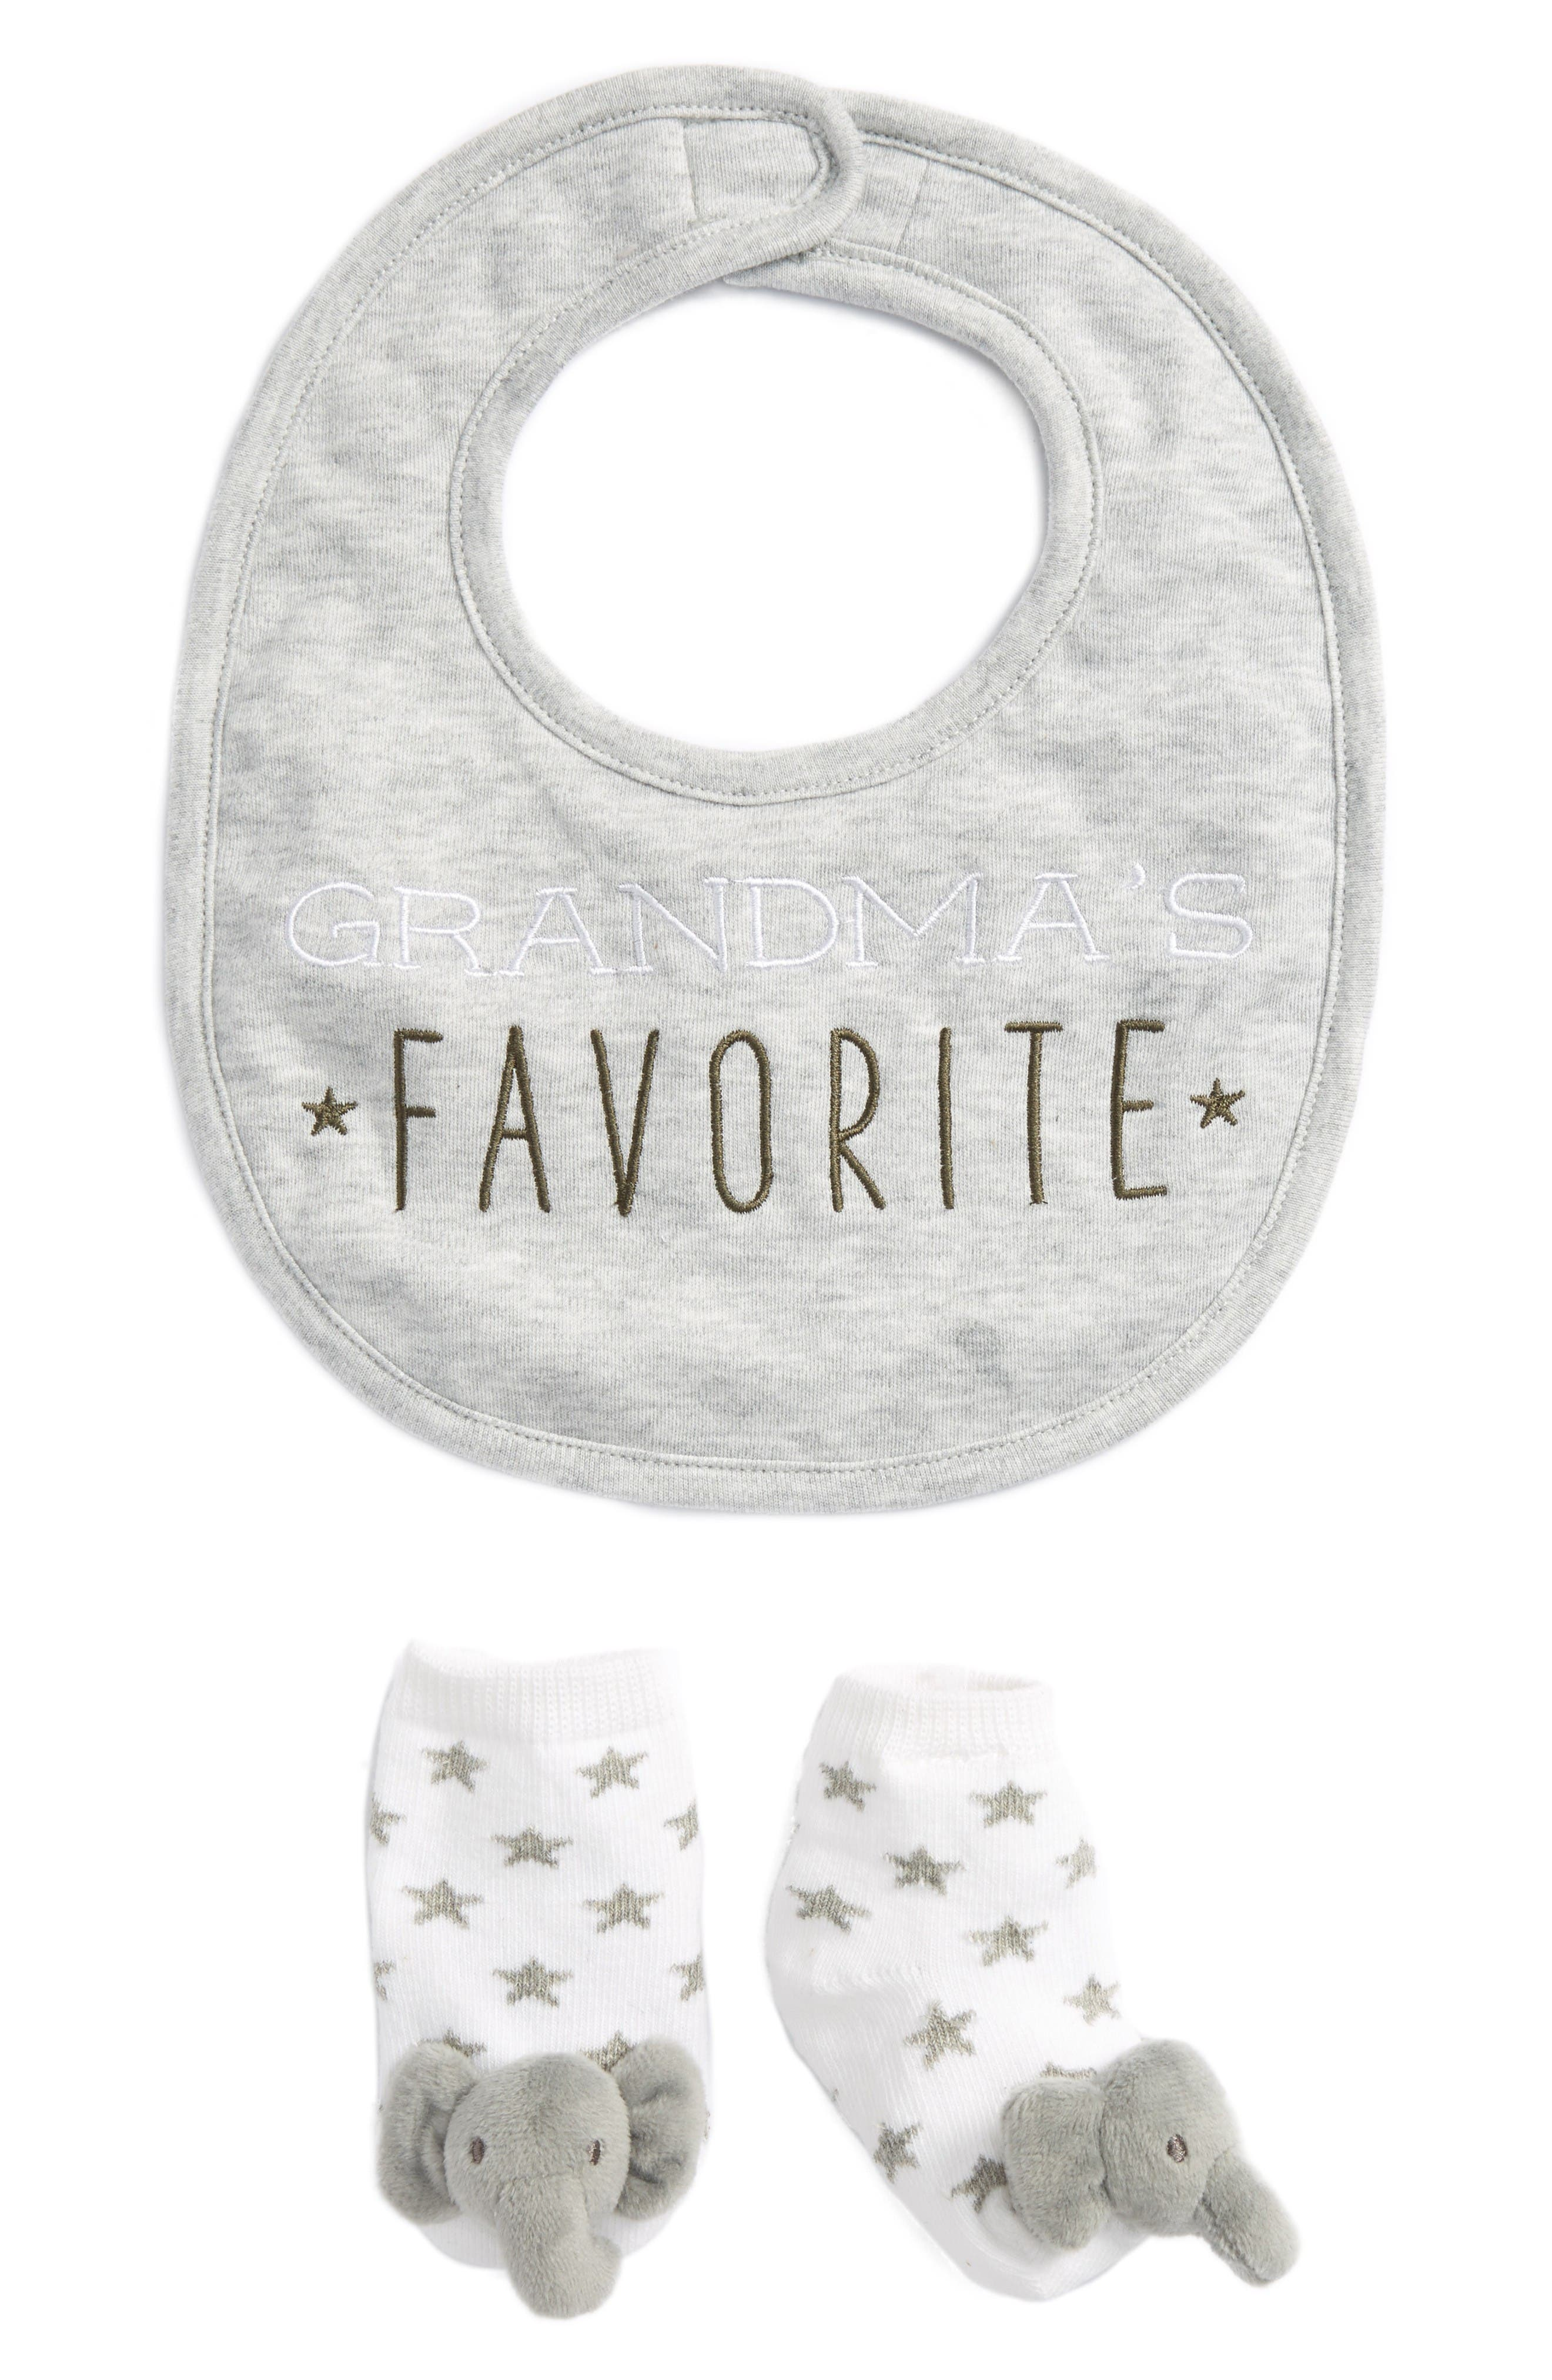 Alternate Image 1 Selected - Mud Pie Grandma's Favorite Bib & Socks Set (Baby)